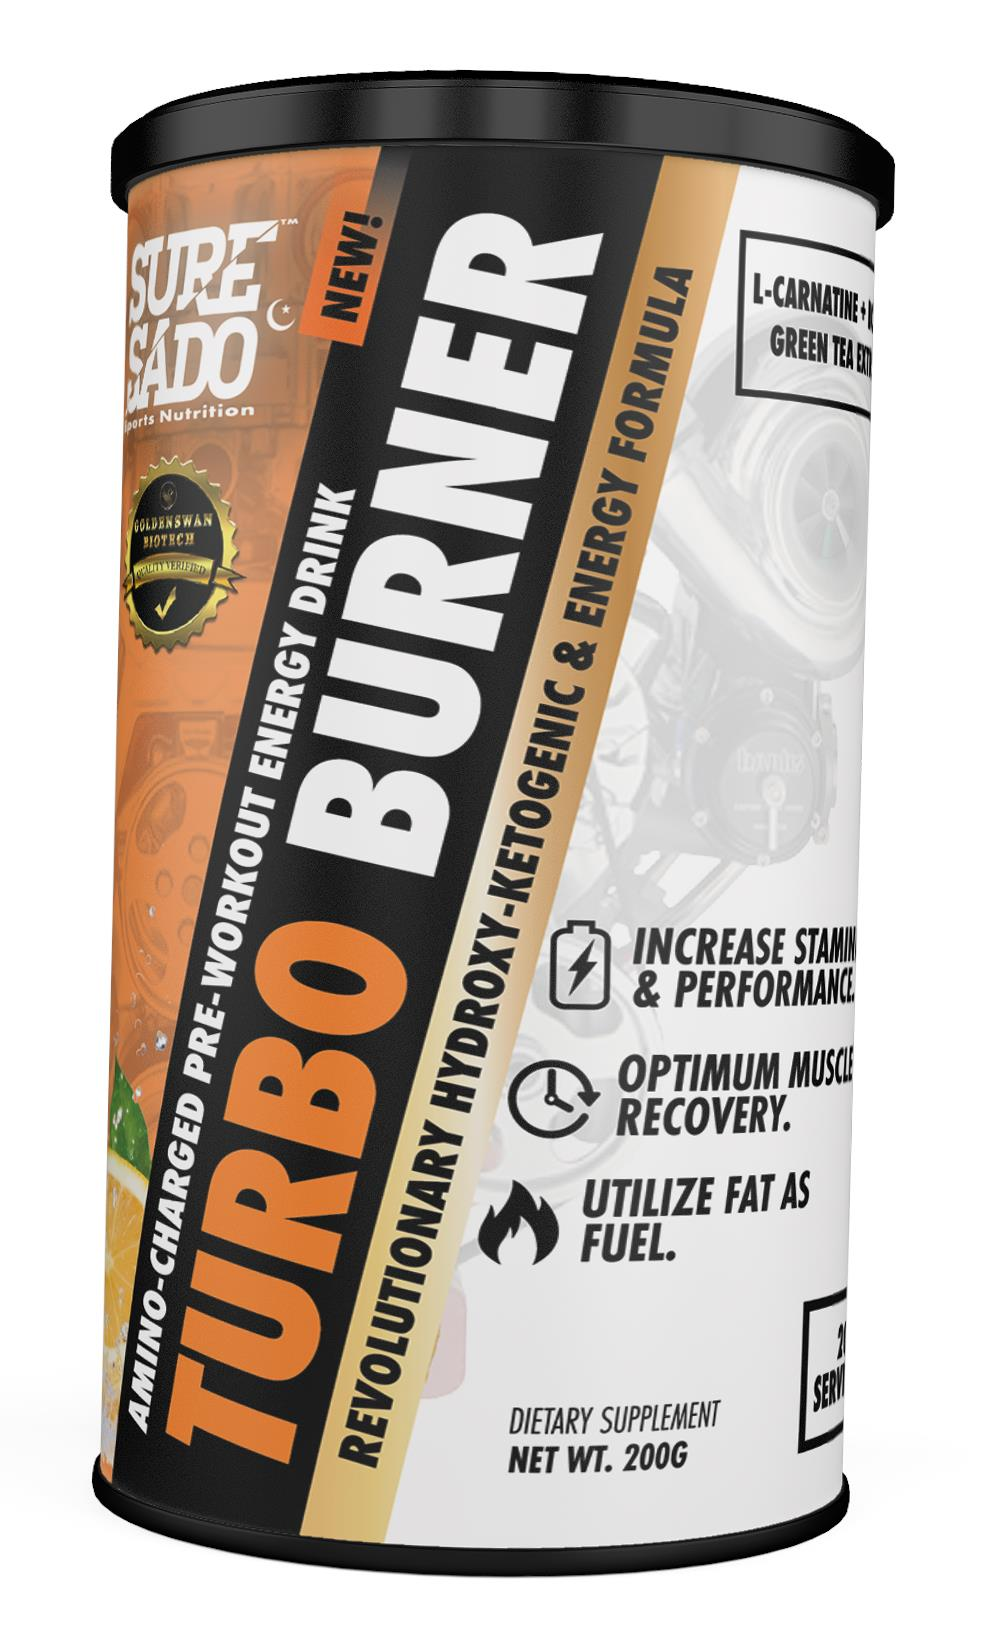 SureSado Sports Nutrition Turbo Burner - Energy, BCAA & Fat Burner 200